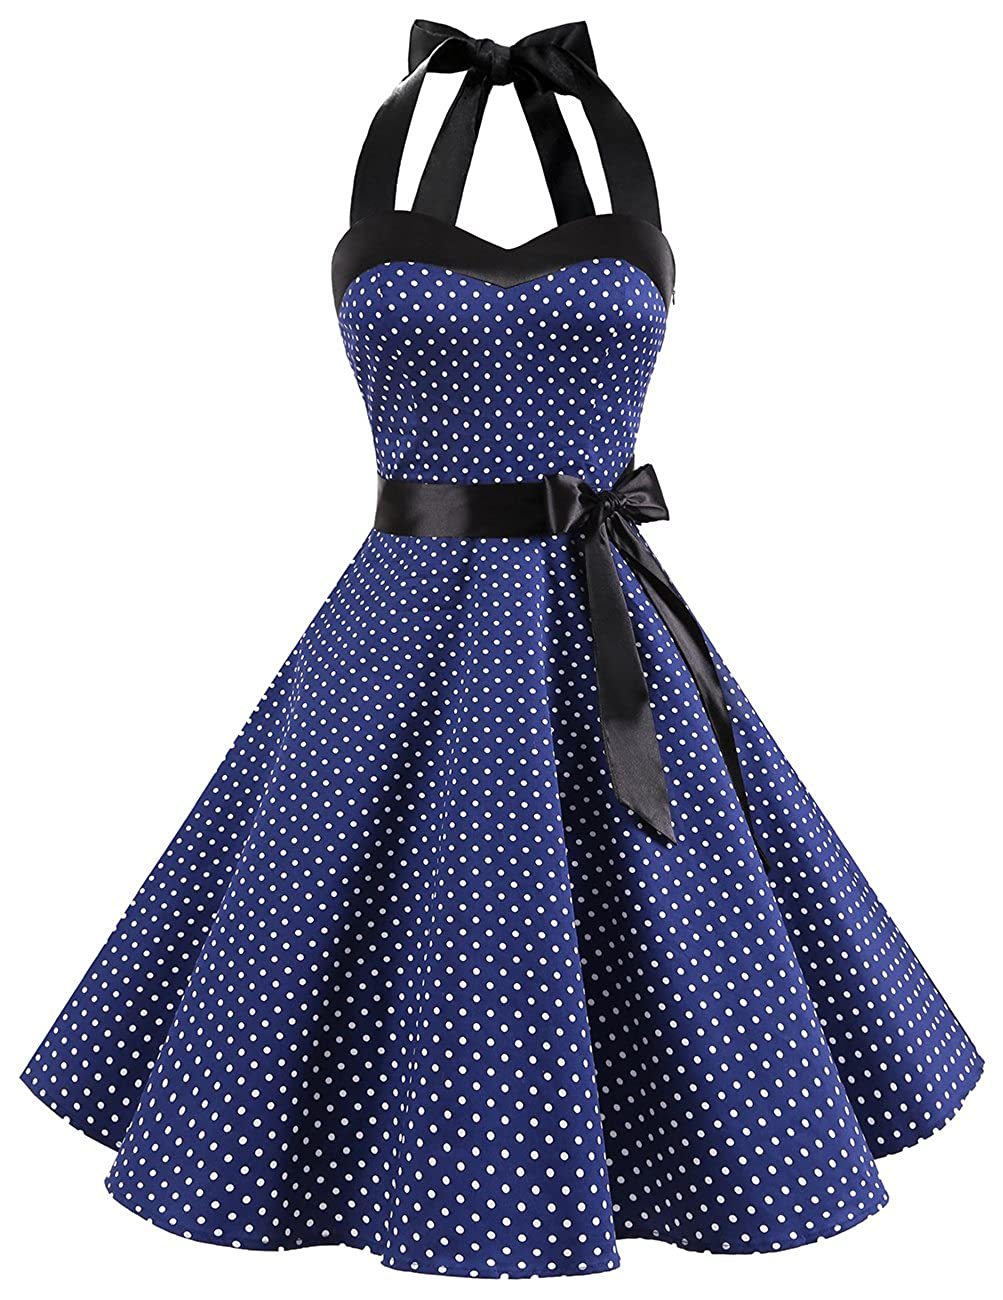 TALLA XXL. Dresstells® Halter 50s Rockabilly Polka Dots Audrey Dress Retro Cocktail Dress Navy White Dot XXL